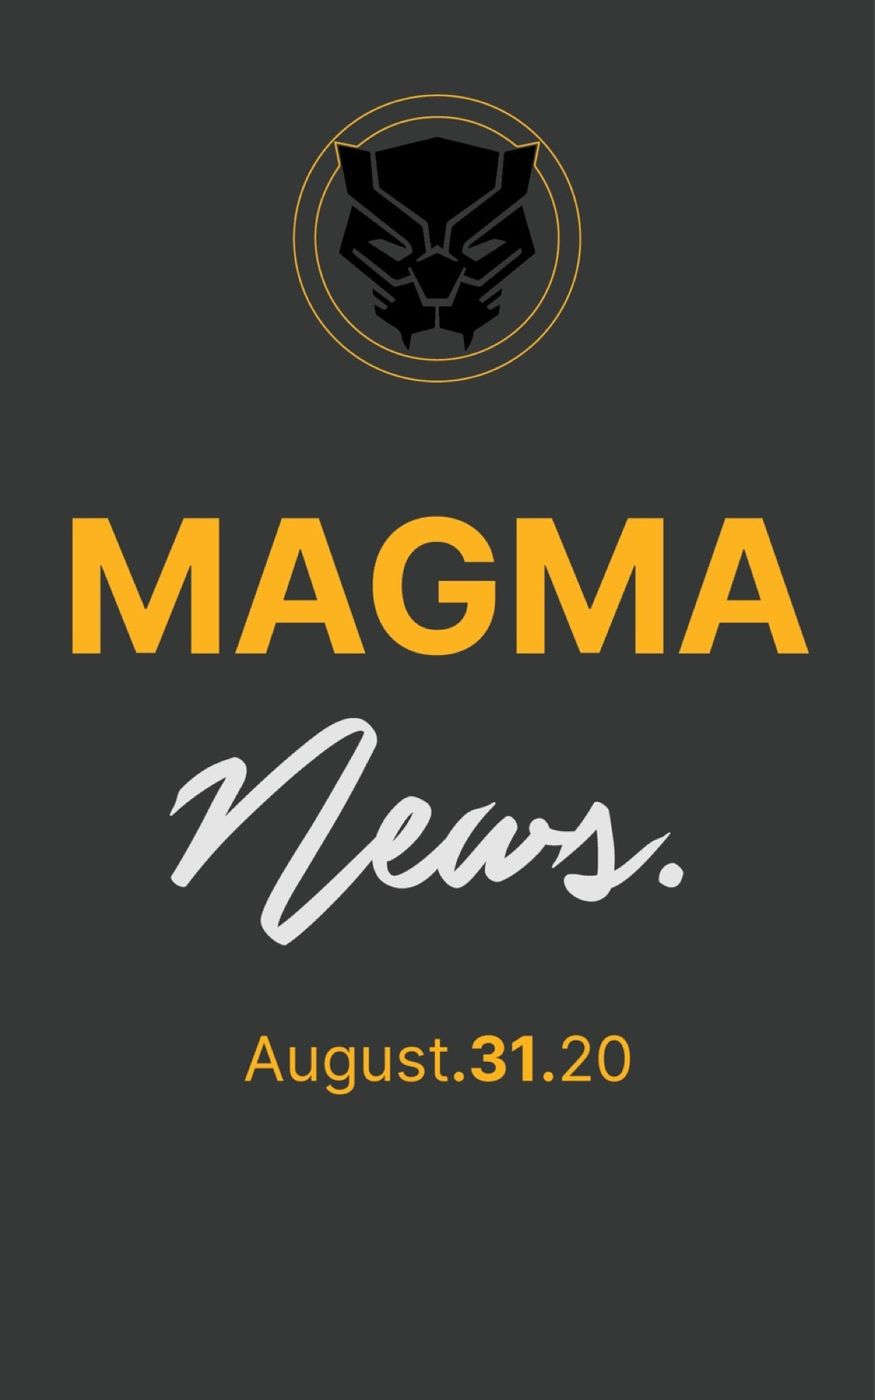 Magma News | August 31, 2020